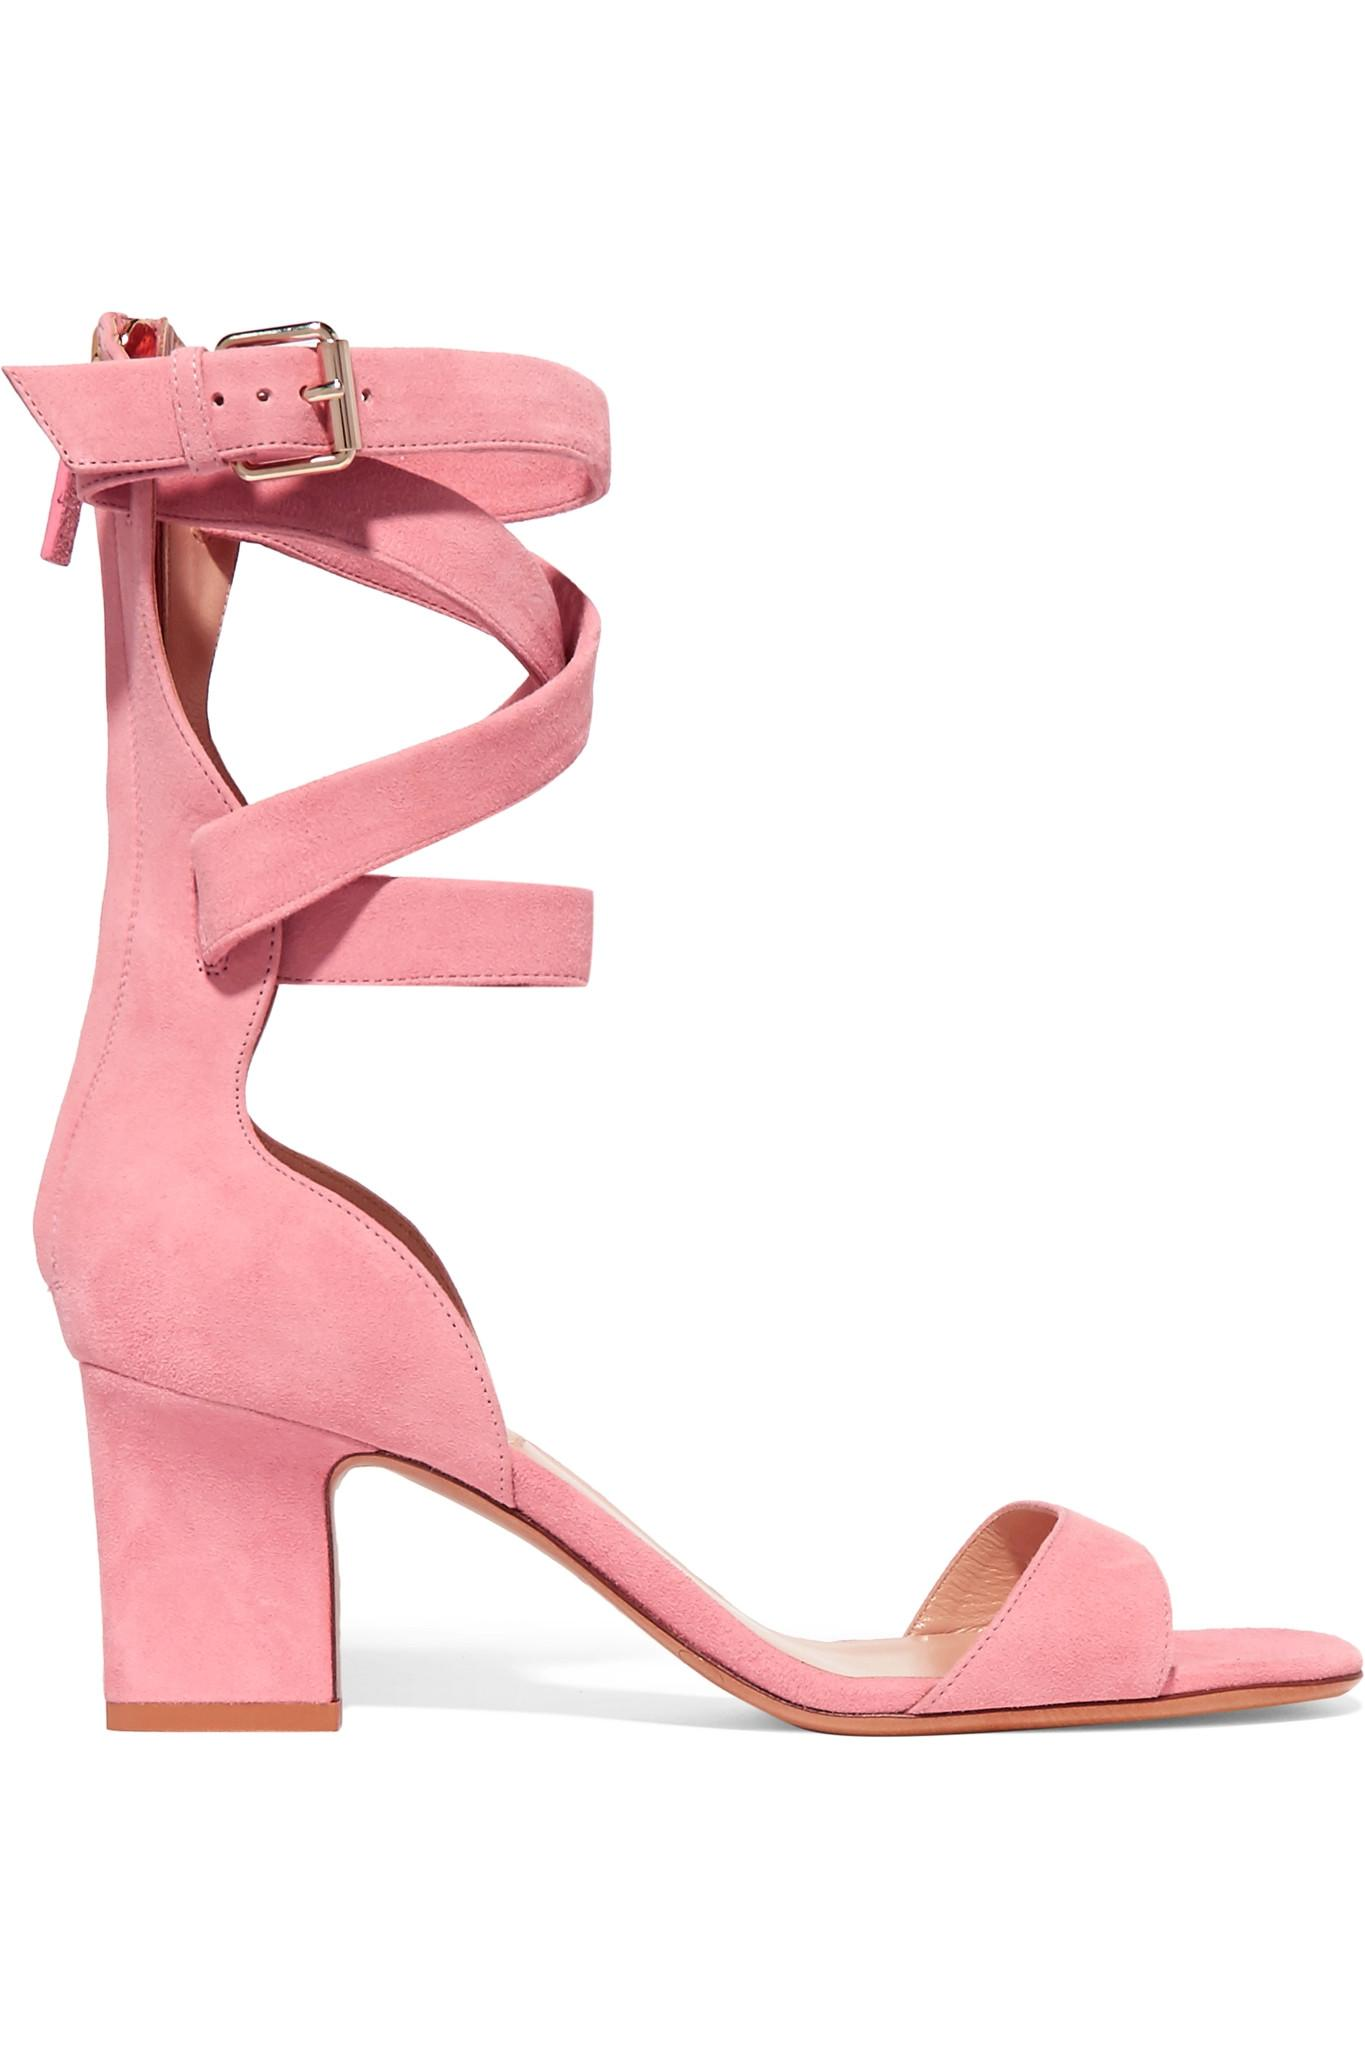 Valentino Suede Sandals in Pink